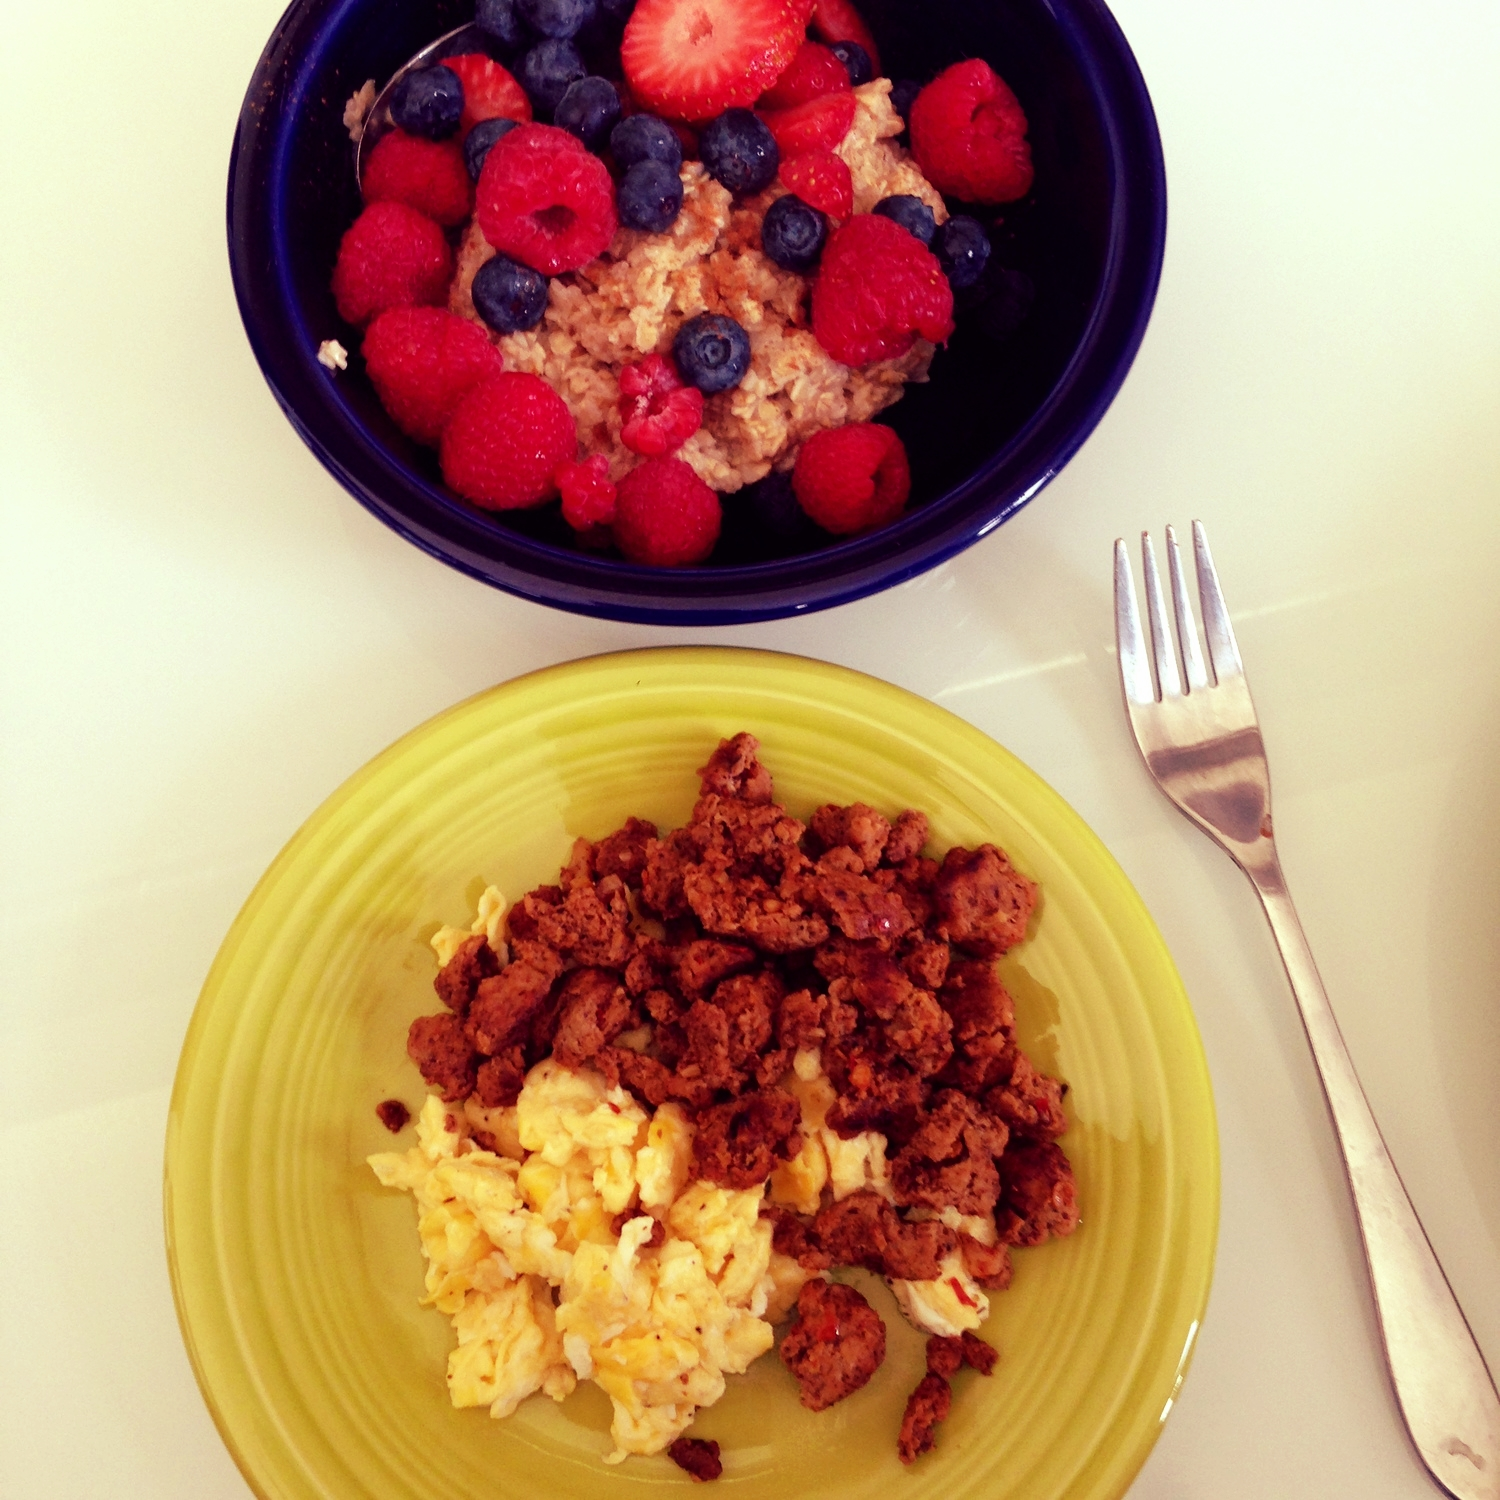 Homemade Turkey sausage, eggs, steel oats, berries